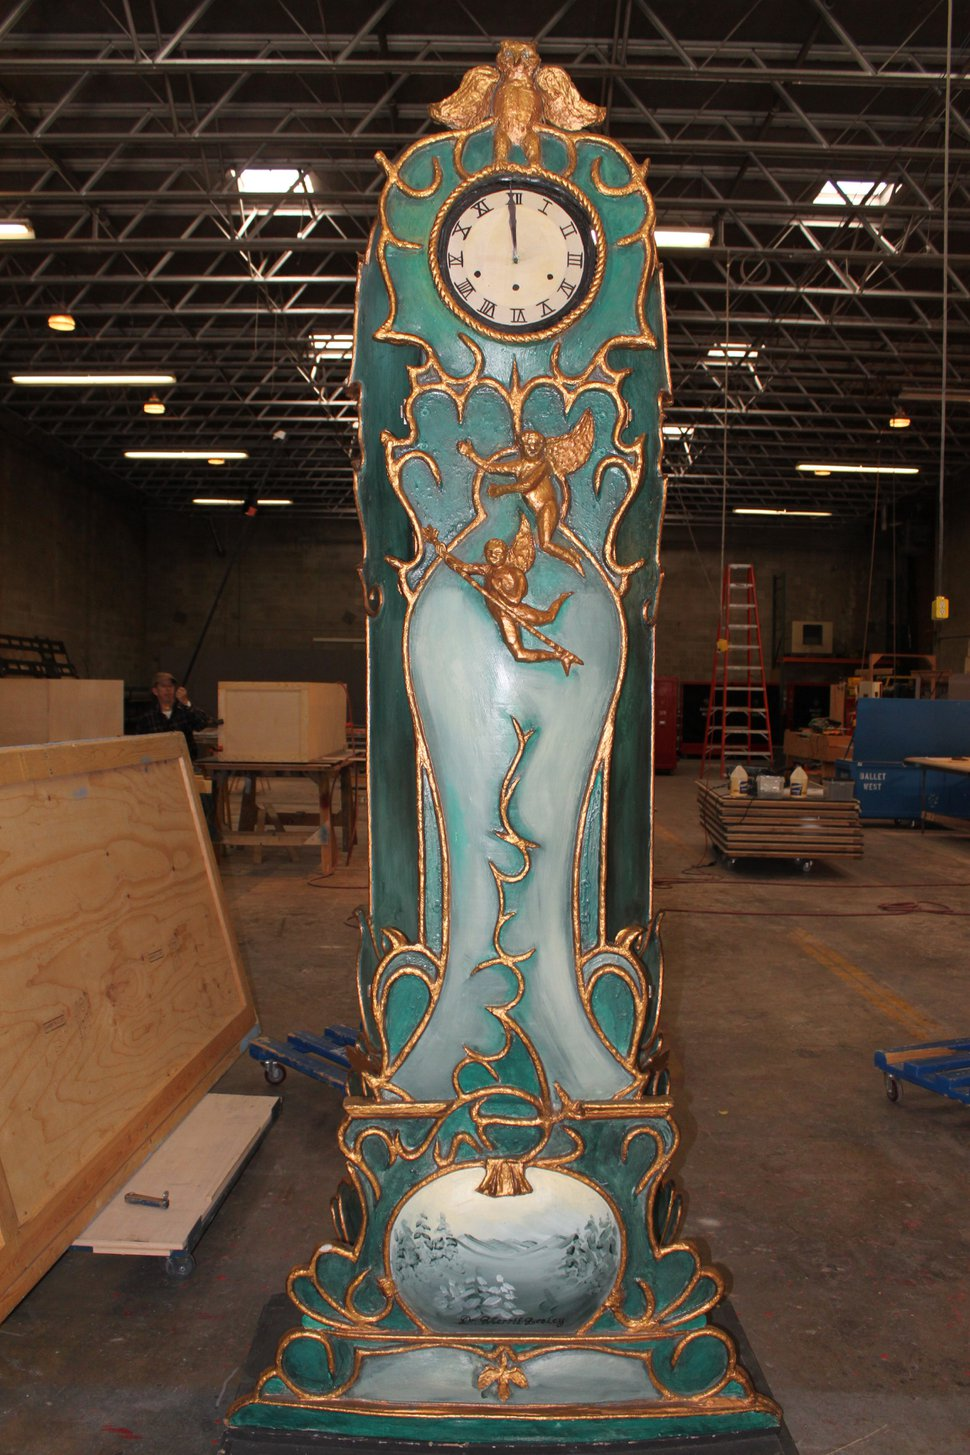 (Courtesy photo) The Stahlbaums' grandfather clock is believed to be the only set piece still in rotation from Ballet West's original production of